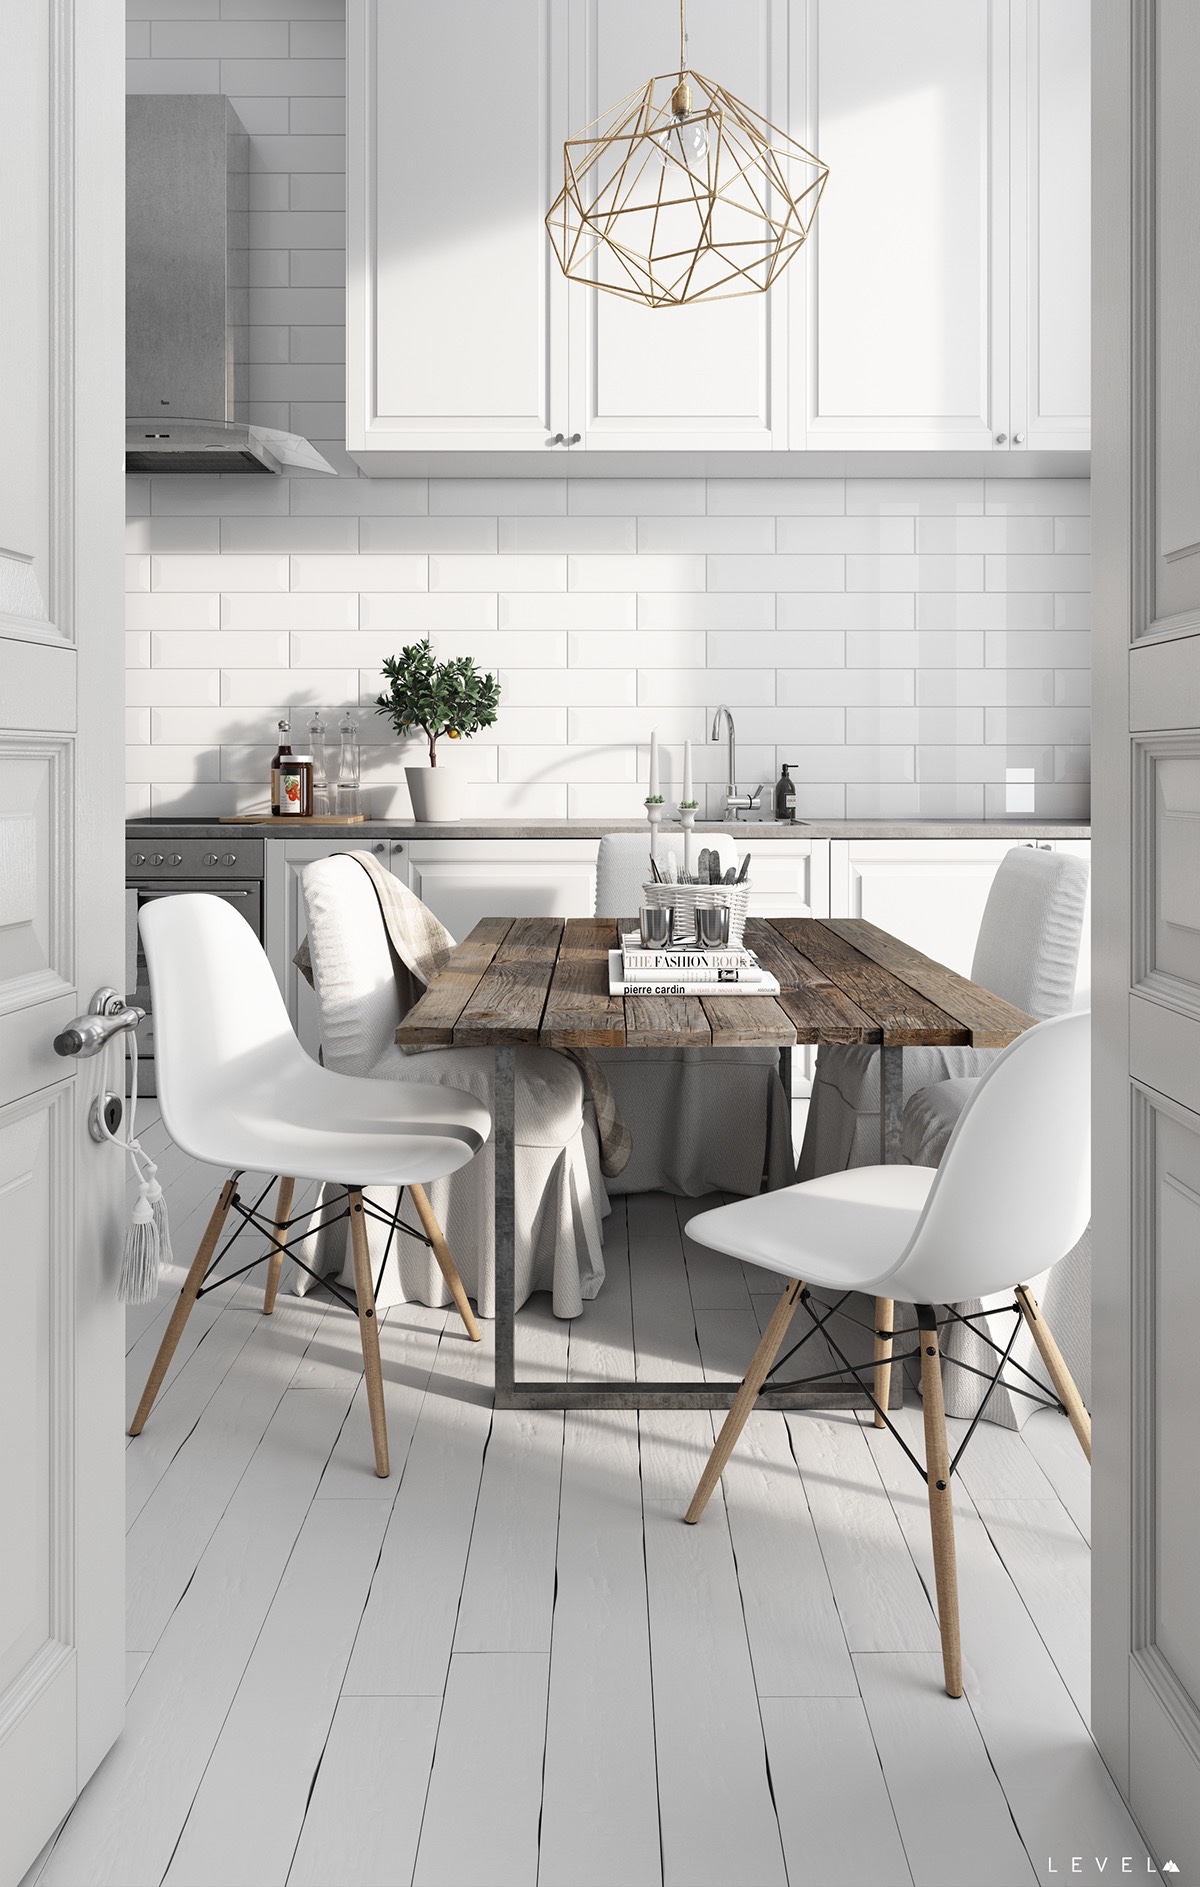 Kitchen Room Interior Design: Scandinavian Kitchens: Ideas & Inspiration